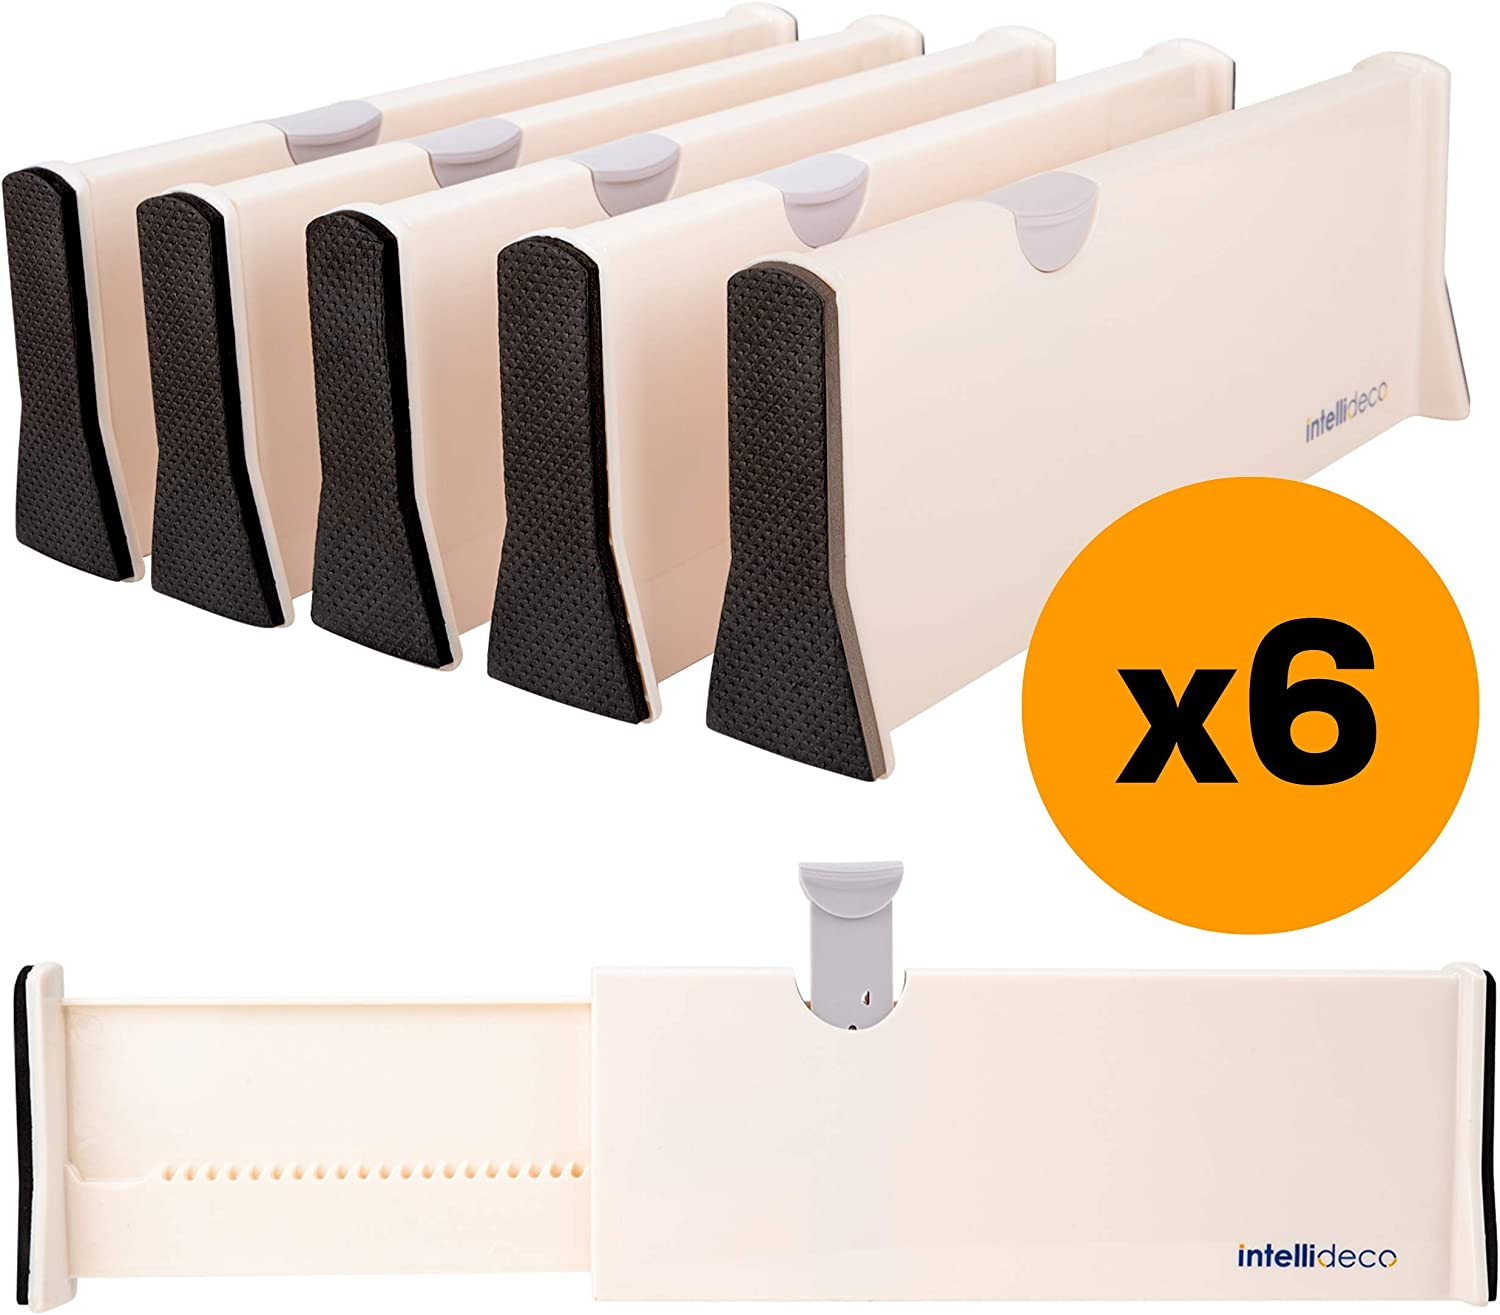 """Intellideco Drawer Dividers Organizers, 6 Pack, Expandable Drawer Divider from 11"""" to 17"""" and 4"""" High, Adjustable Separators Perfect for Bedroom, Dresser, Kitchen and Office Use"""